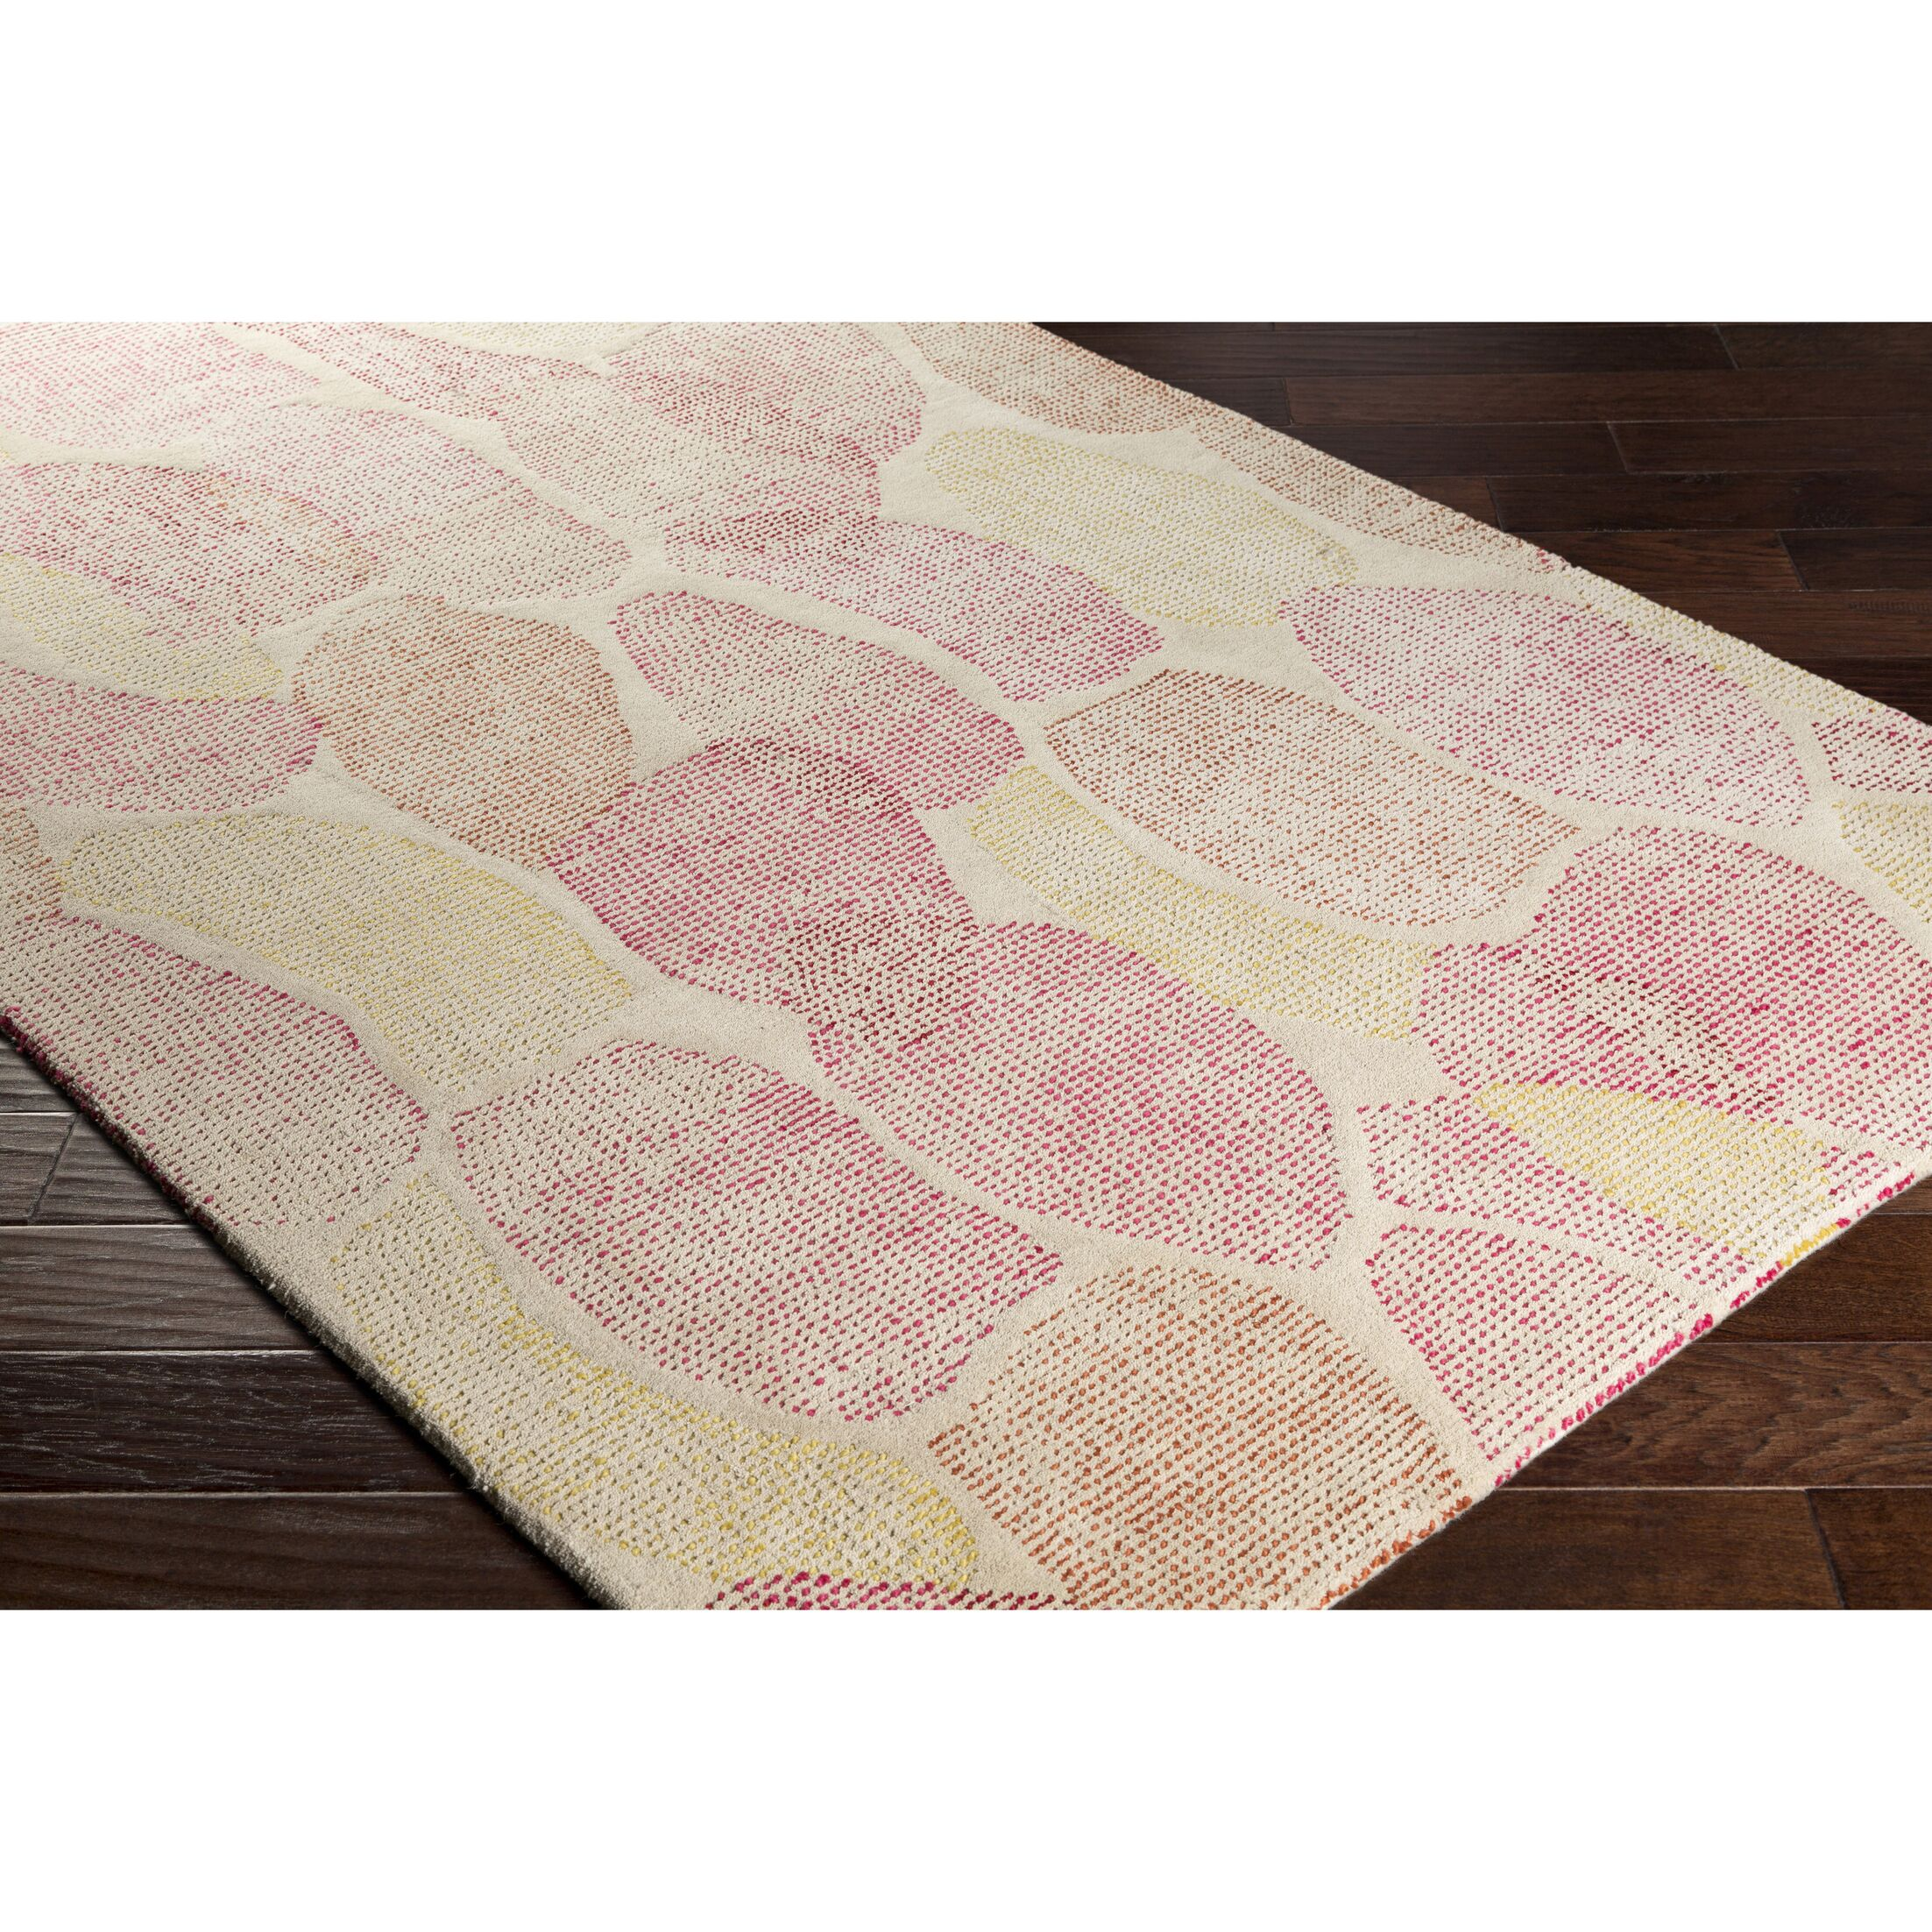 Digby Hand-Tufted Neutral/Pink Area Rug Rug Size: Rectangle 5' x 7'6